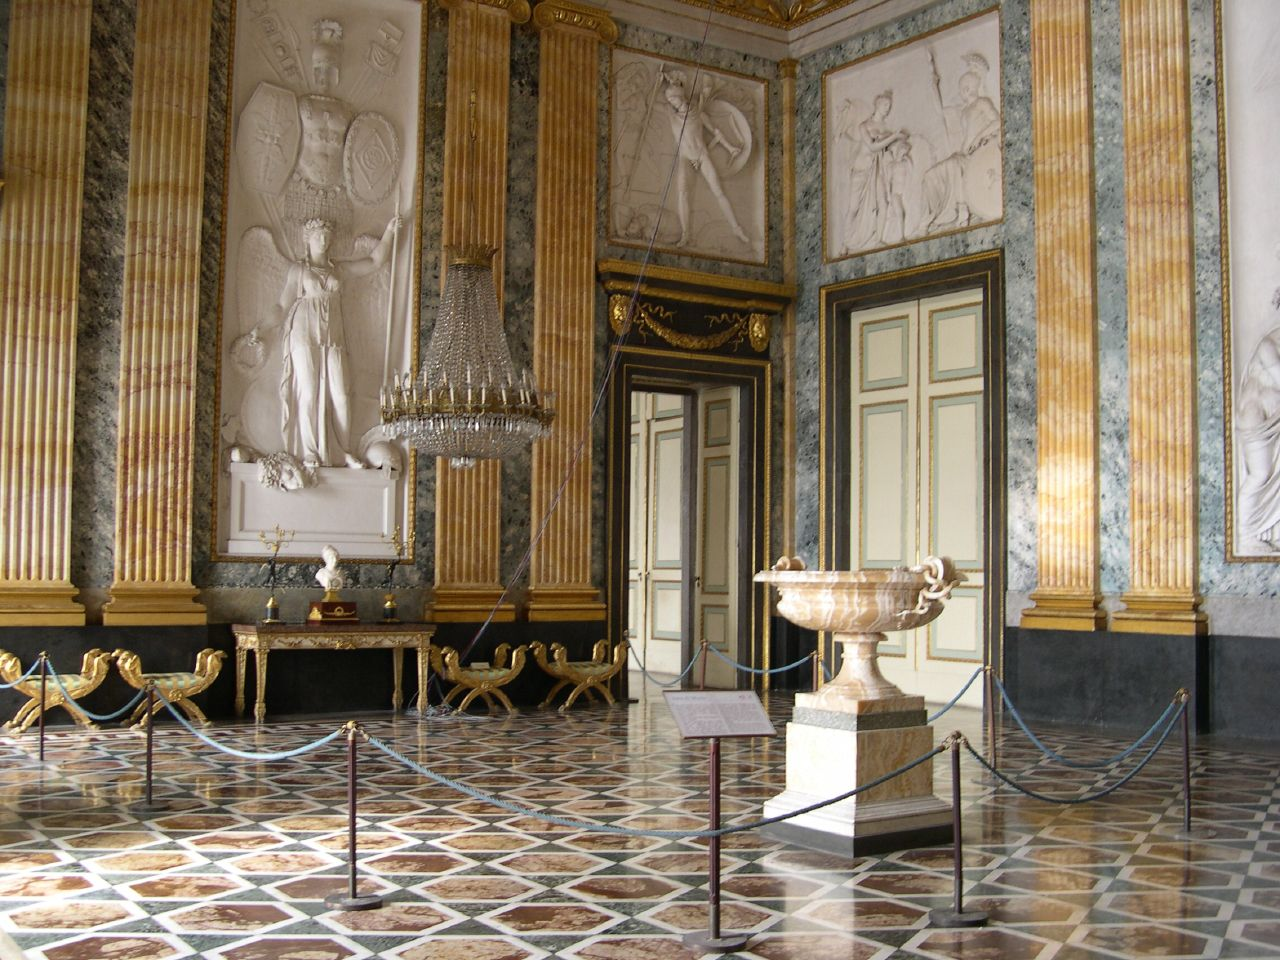 About italian neoclassical interior design for Italian interior design